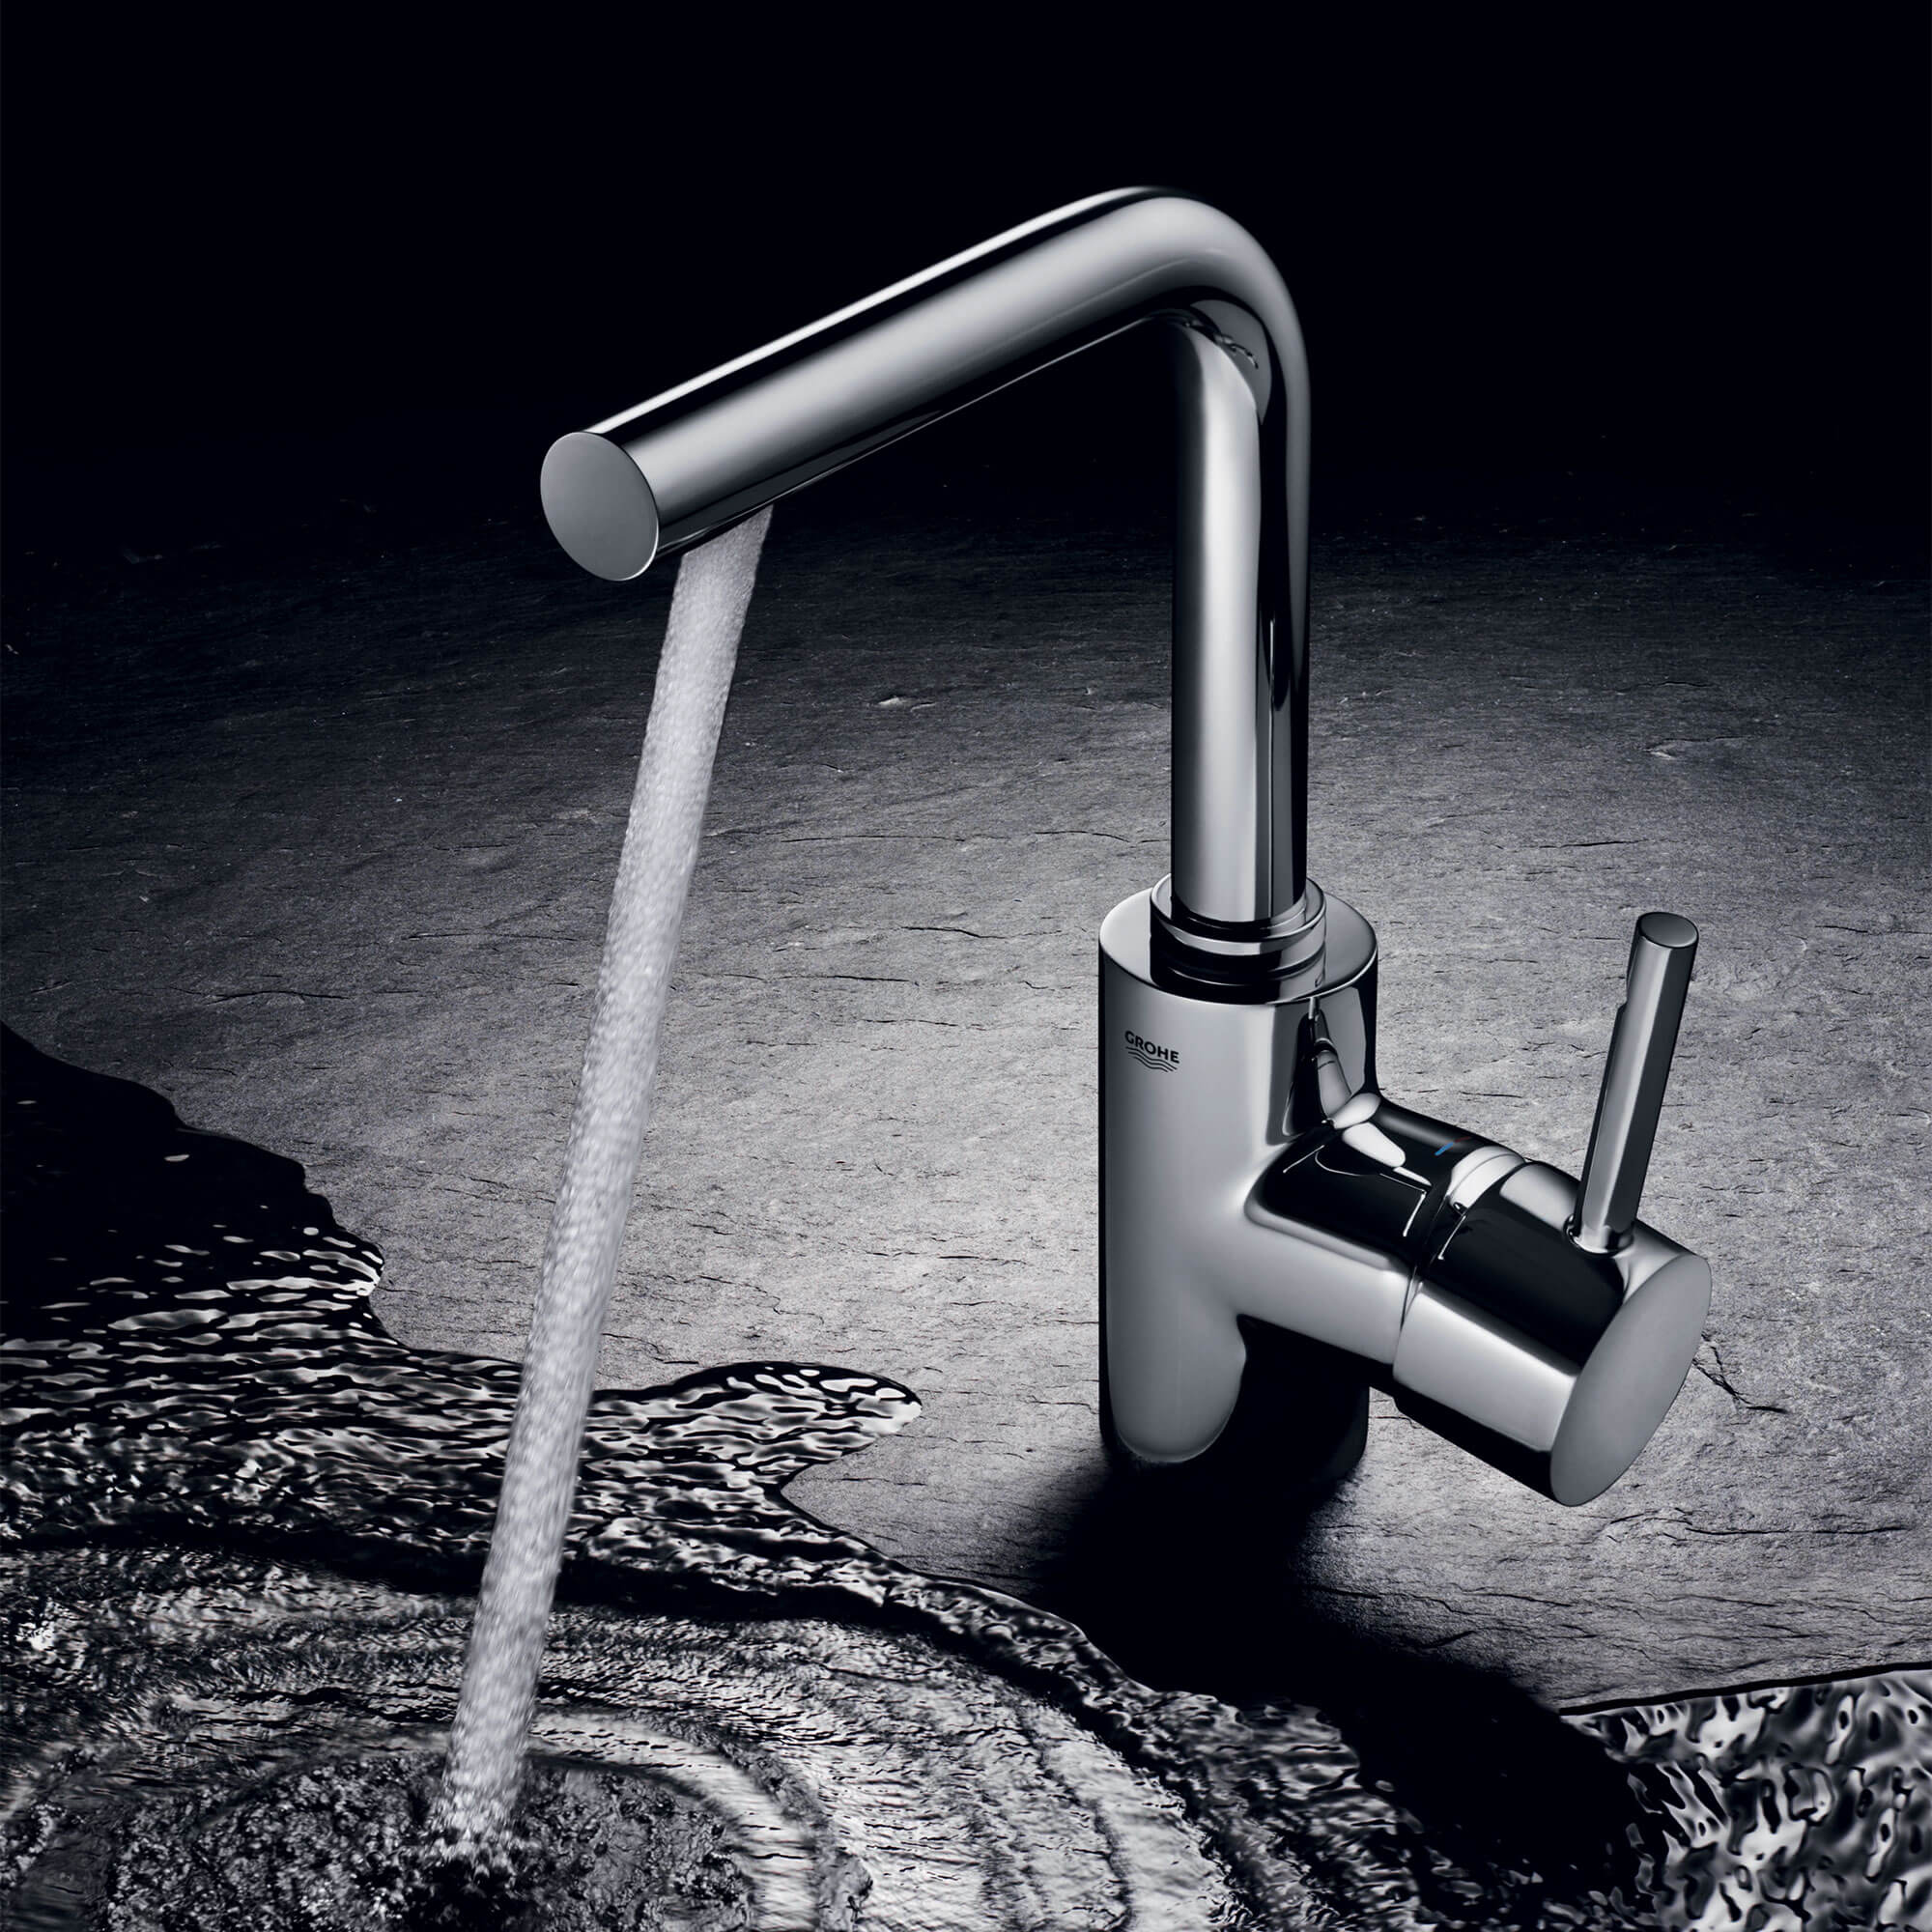 Essence bathroom faucet spraying water into a puddle.